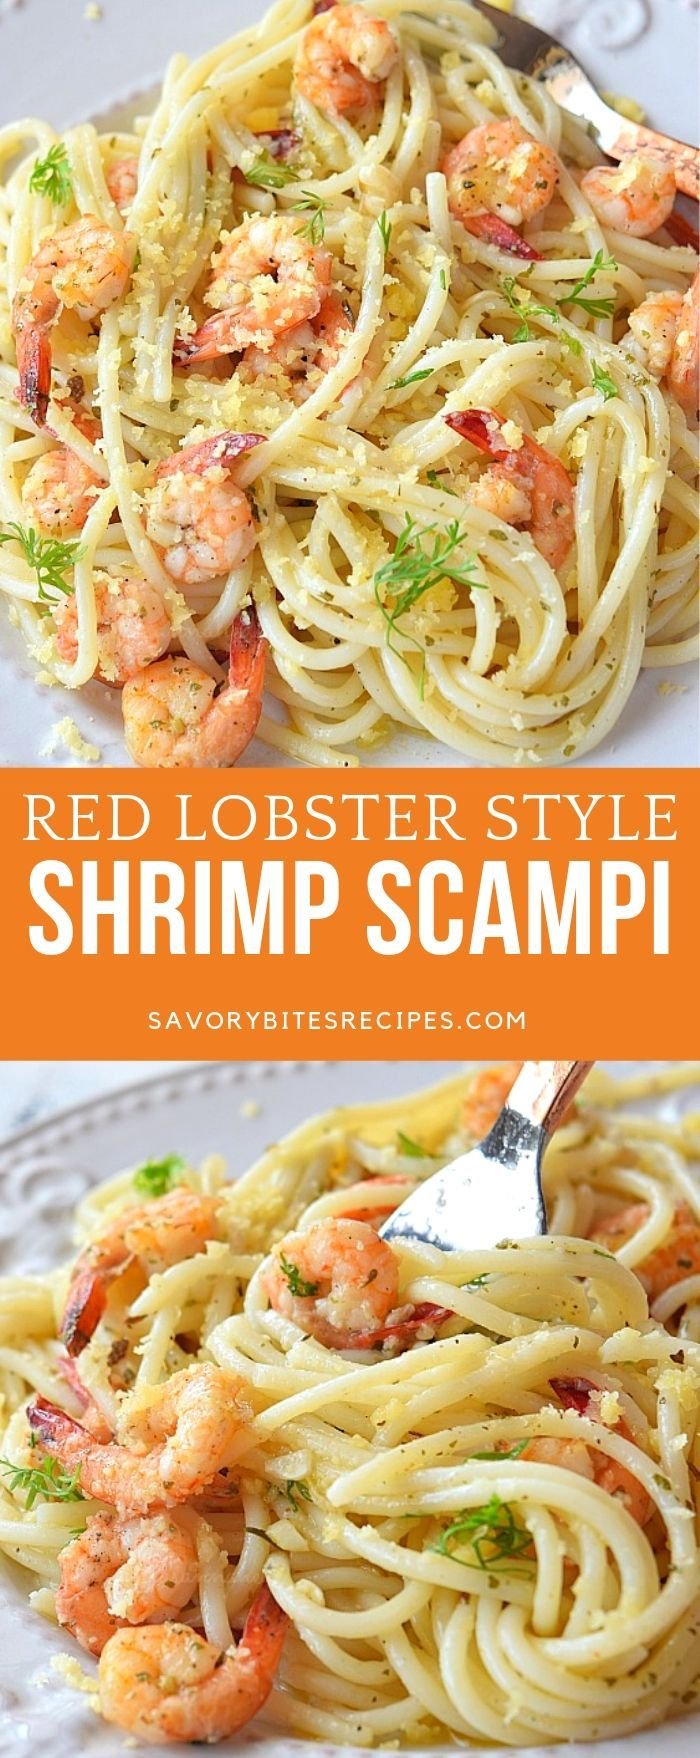 Best Red Lobster Copycat Shrimp Scampi #shrimpscampi